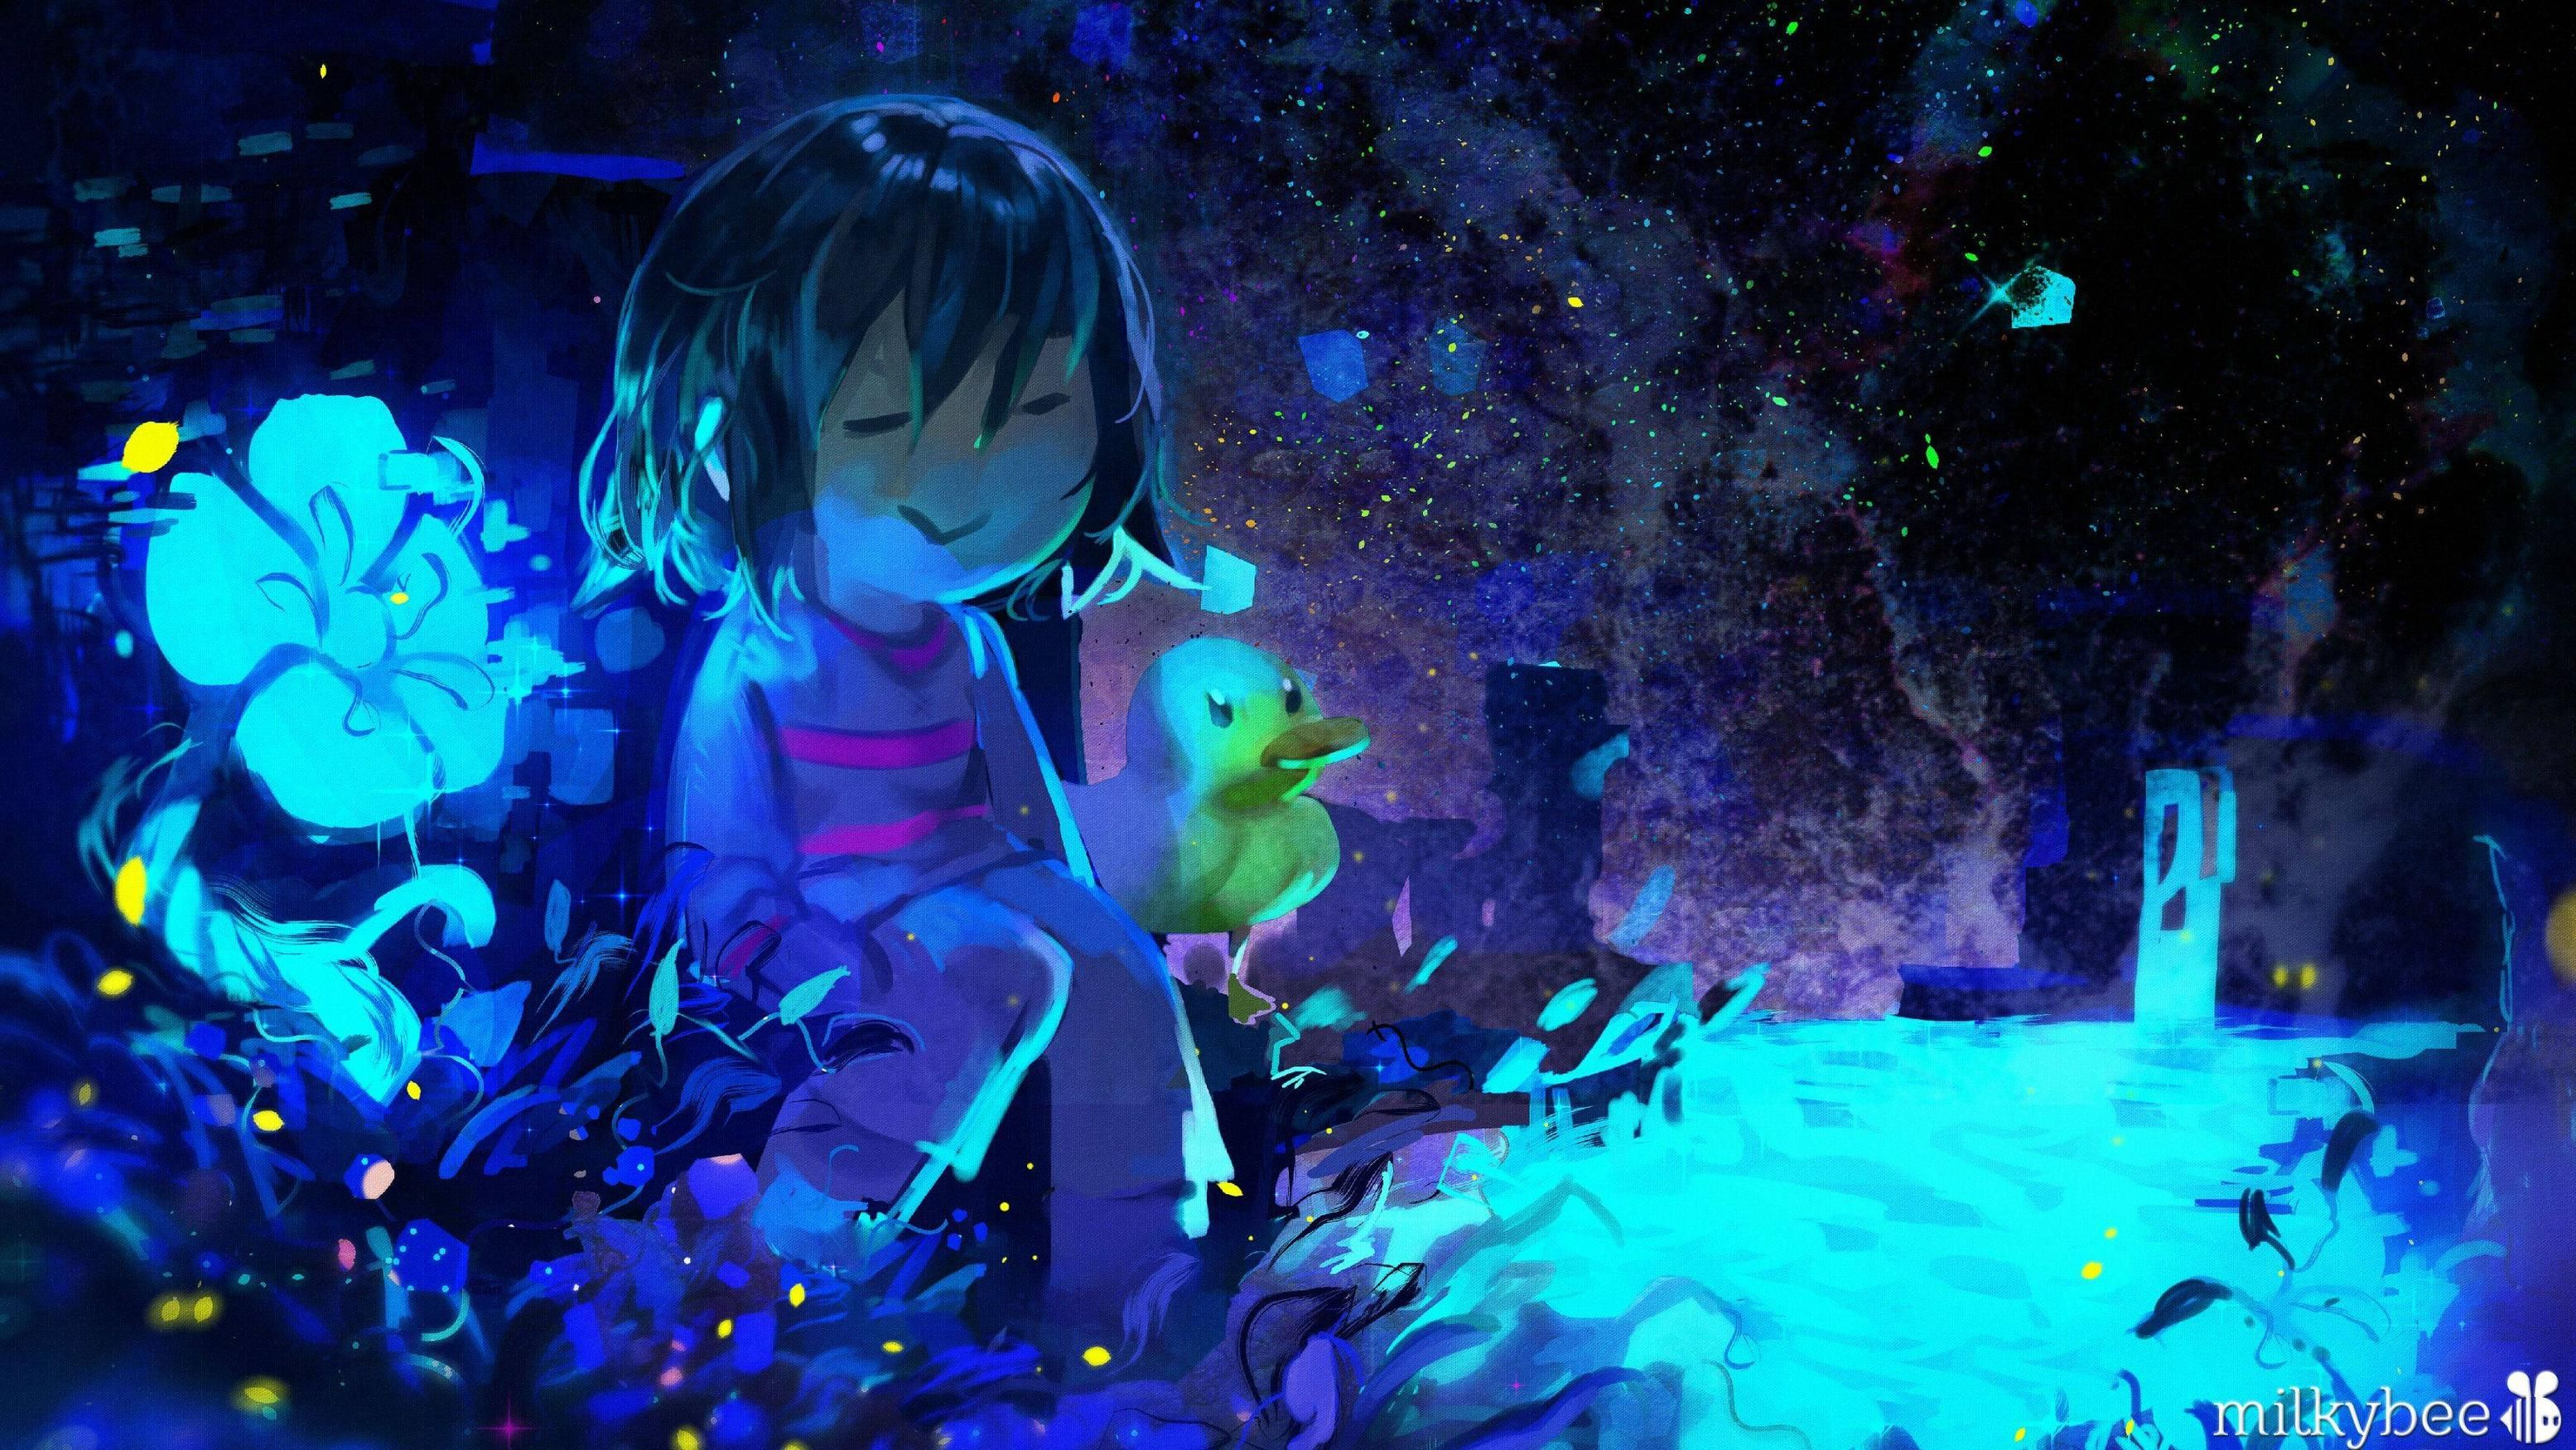 undertale waterfall wallpaper Video games